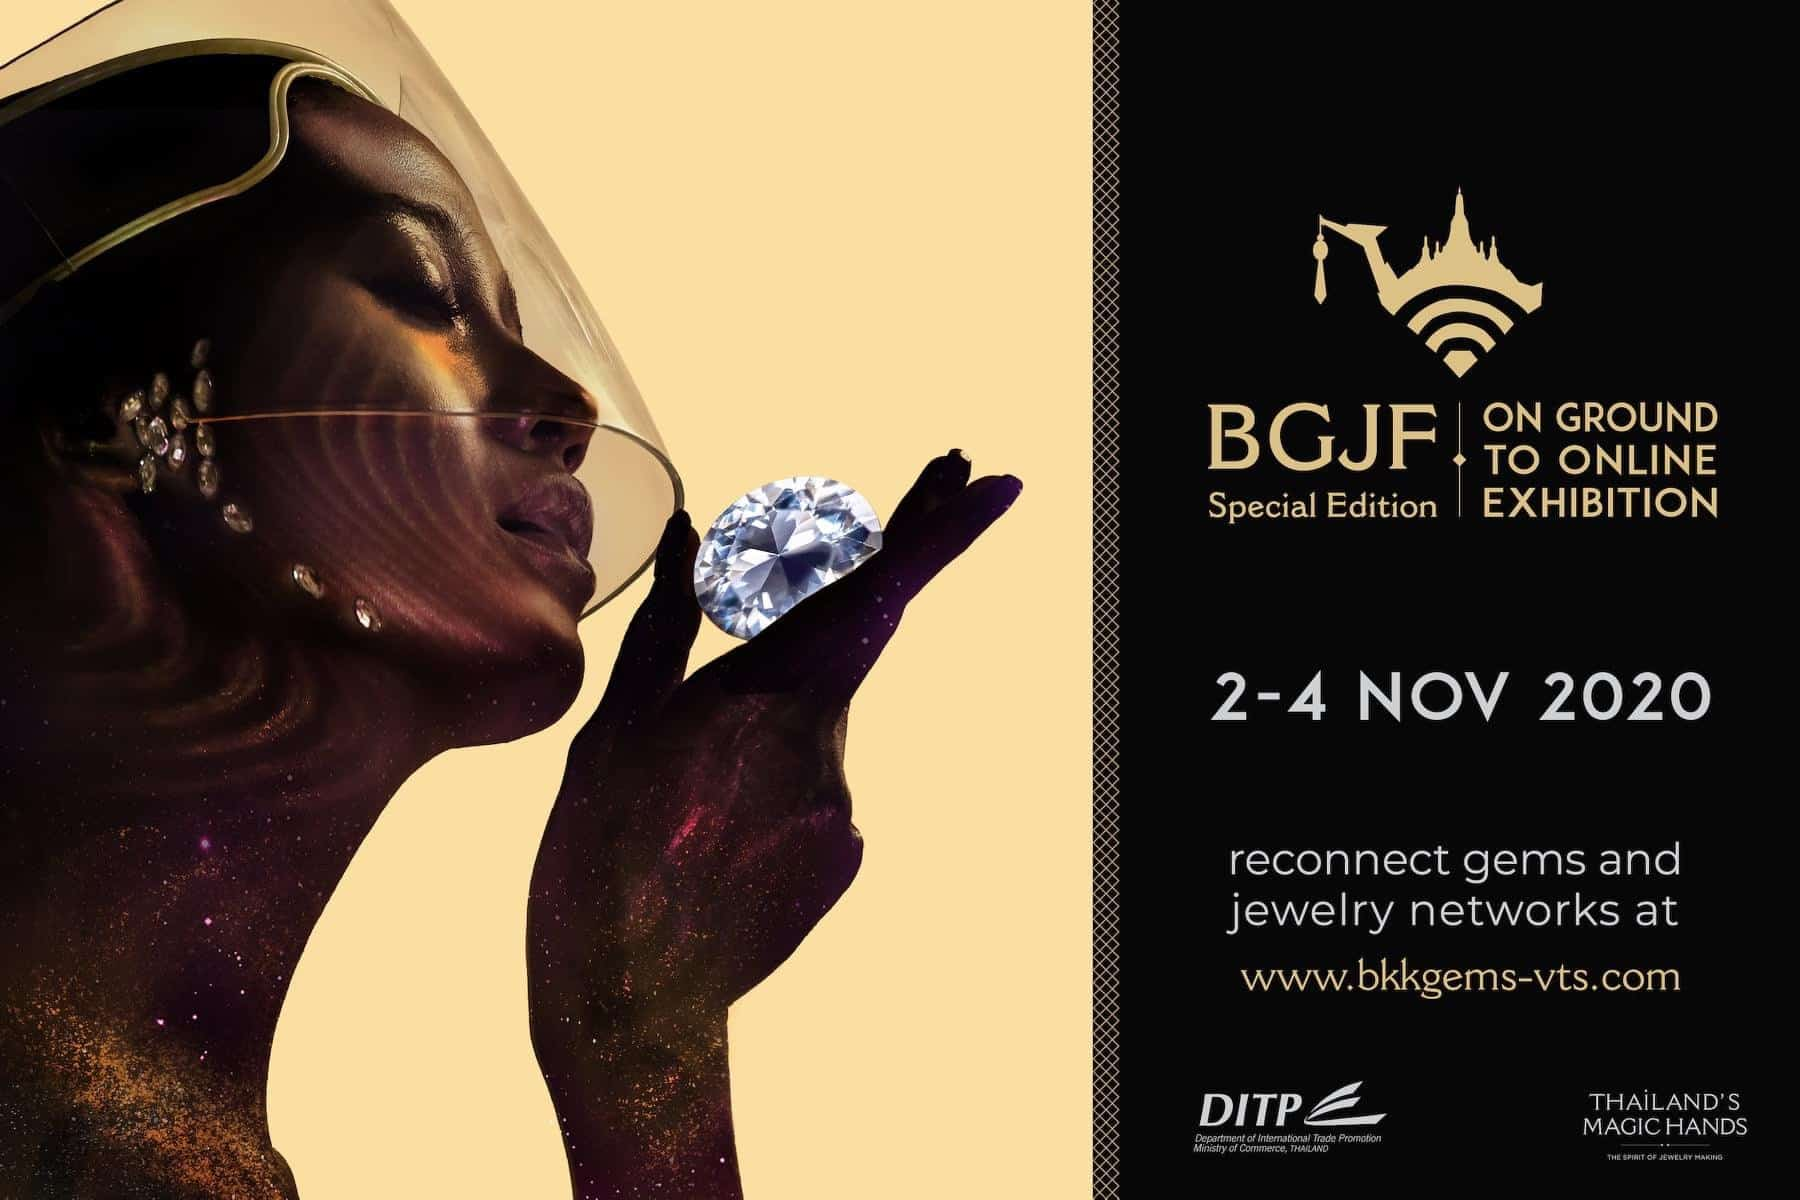 Thailand's DITP (Commerce Ministry) to organise November 2-4 virtual gems and jewelry trade event